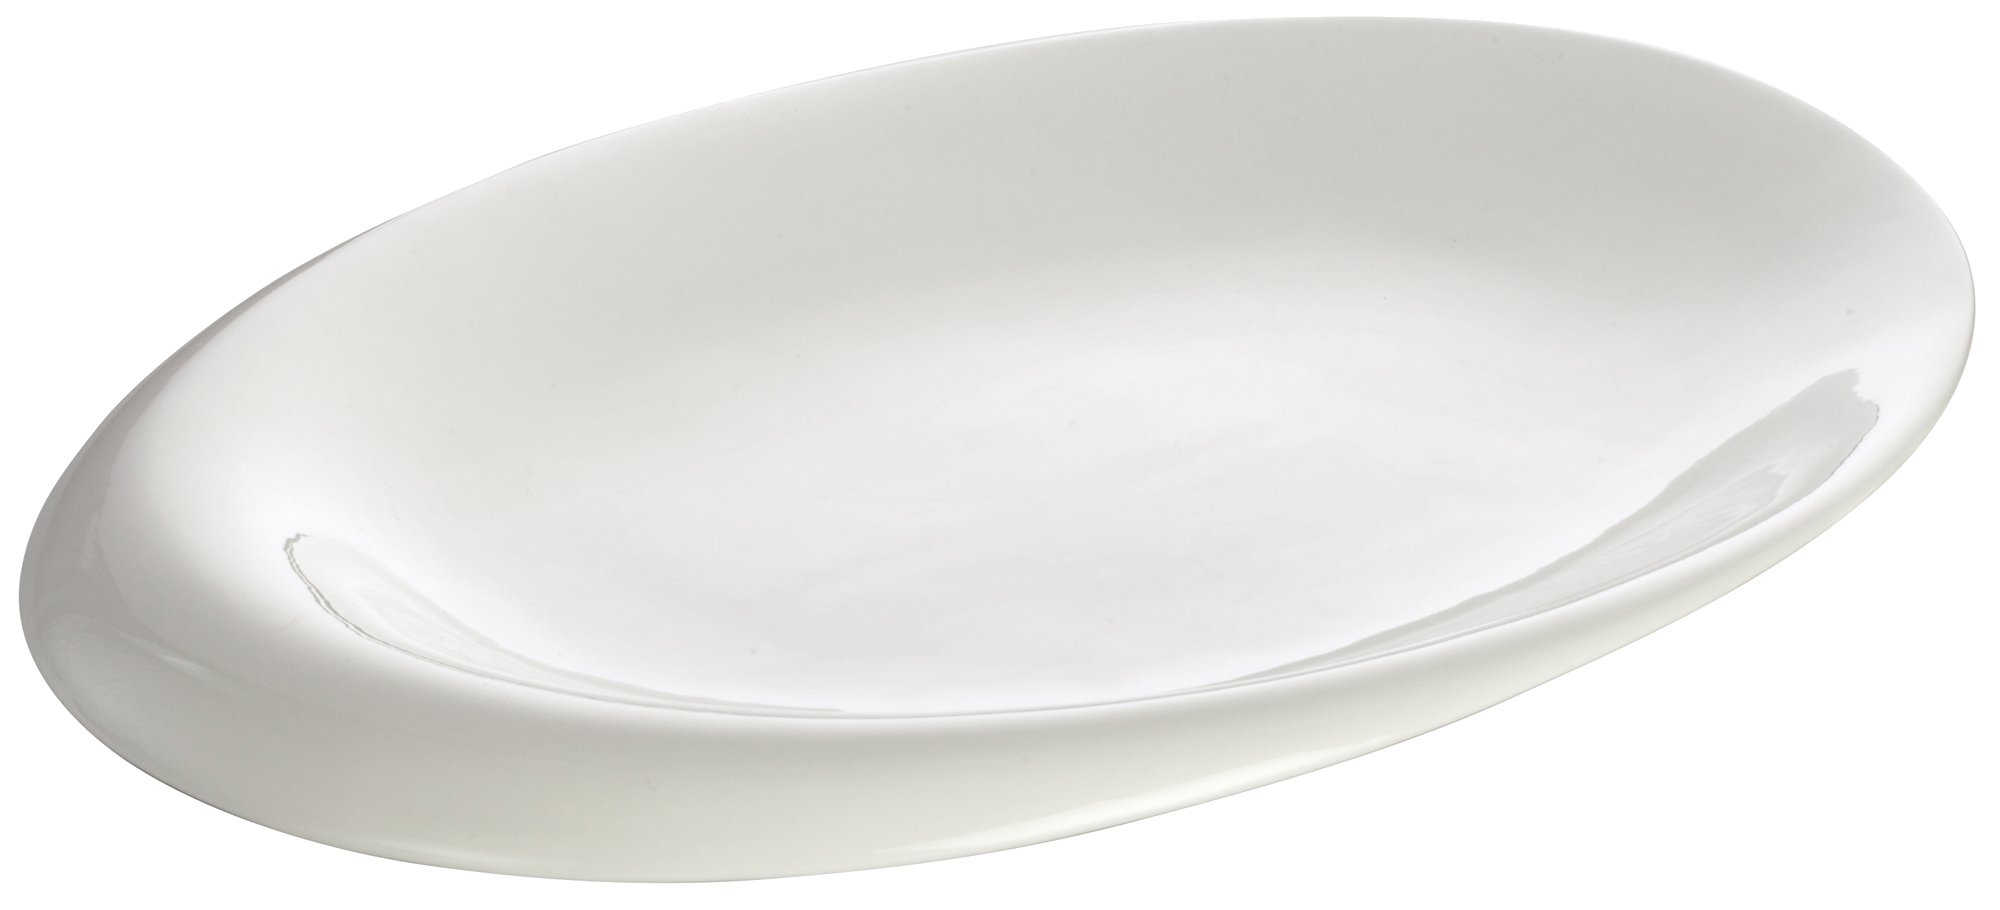 Winco WDP004-212 china, bowl (unknown capacity)